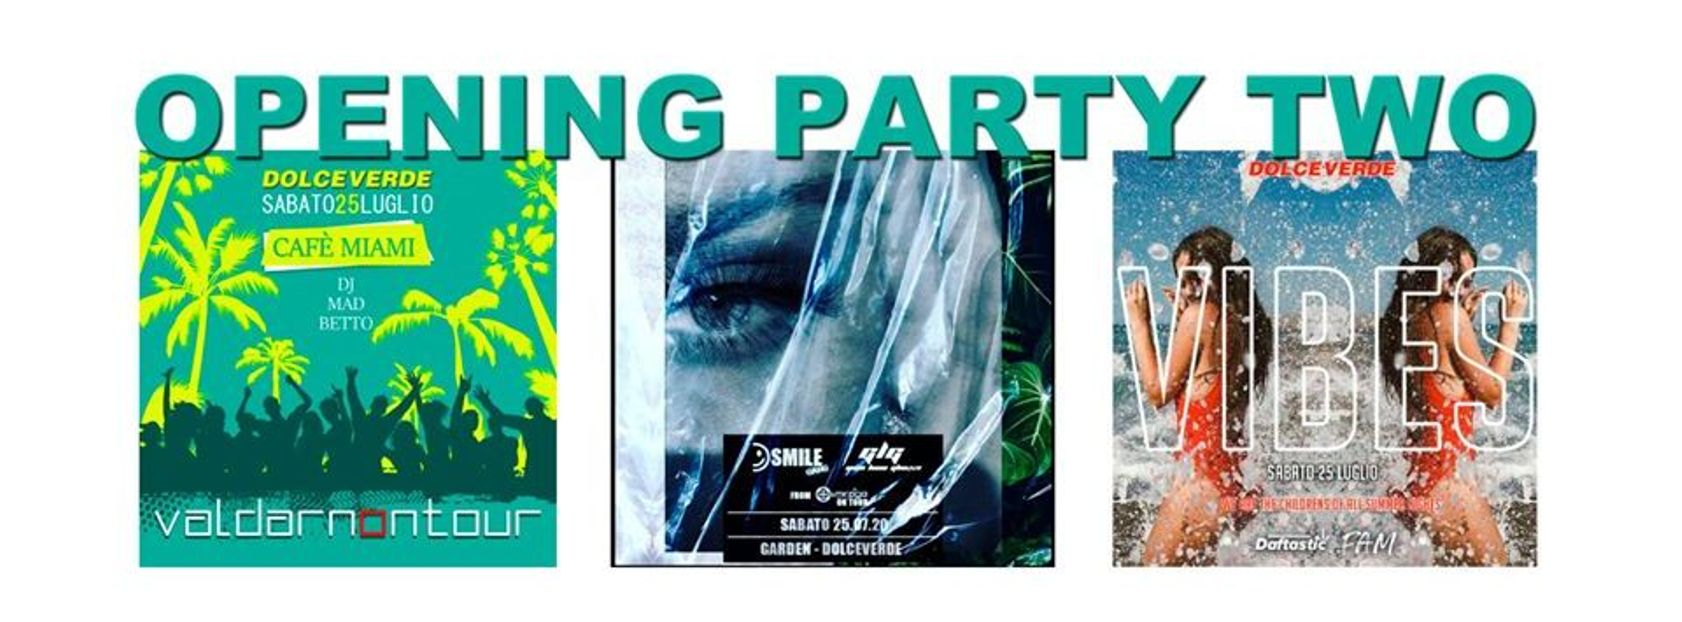 - DOLCEVERDE Opening party two